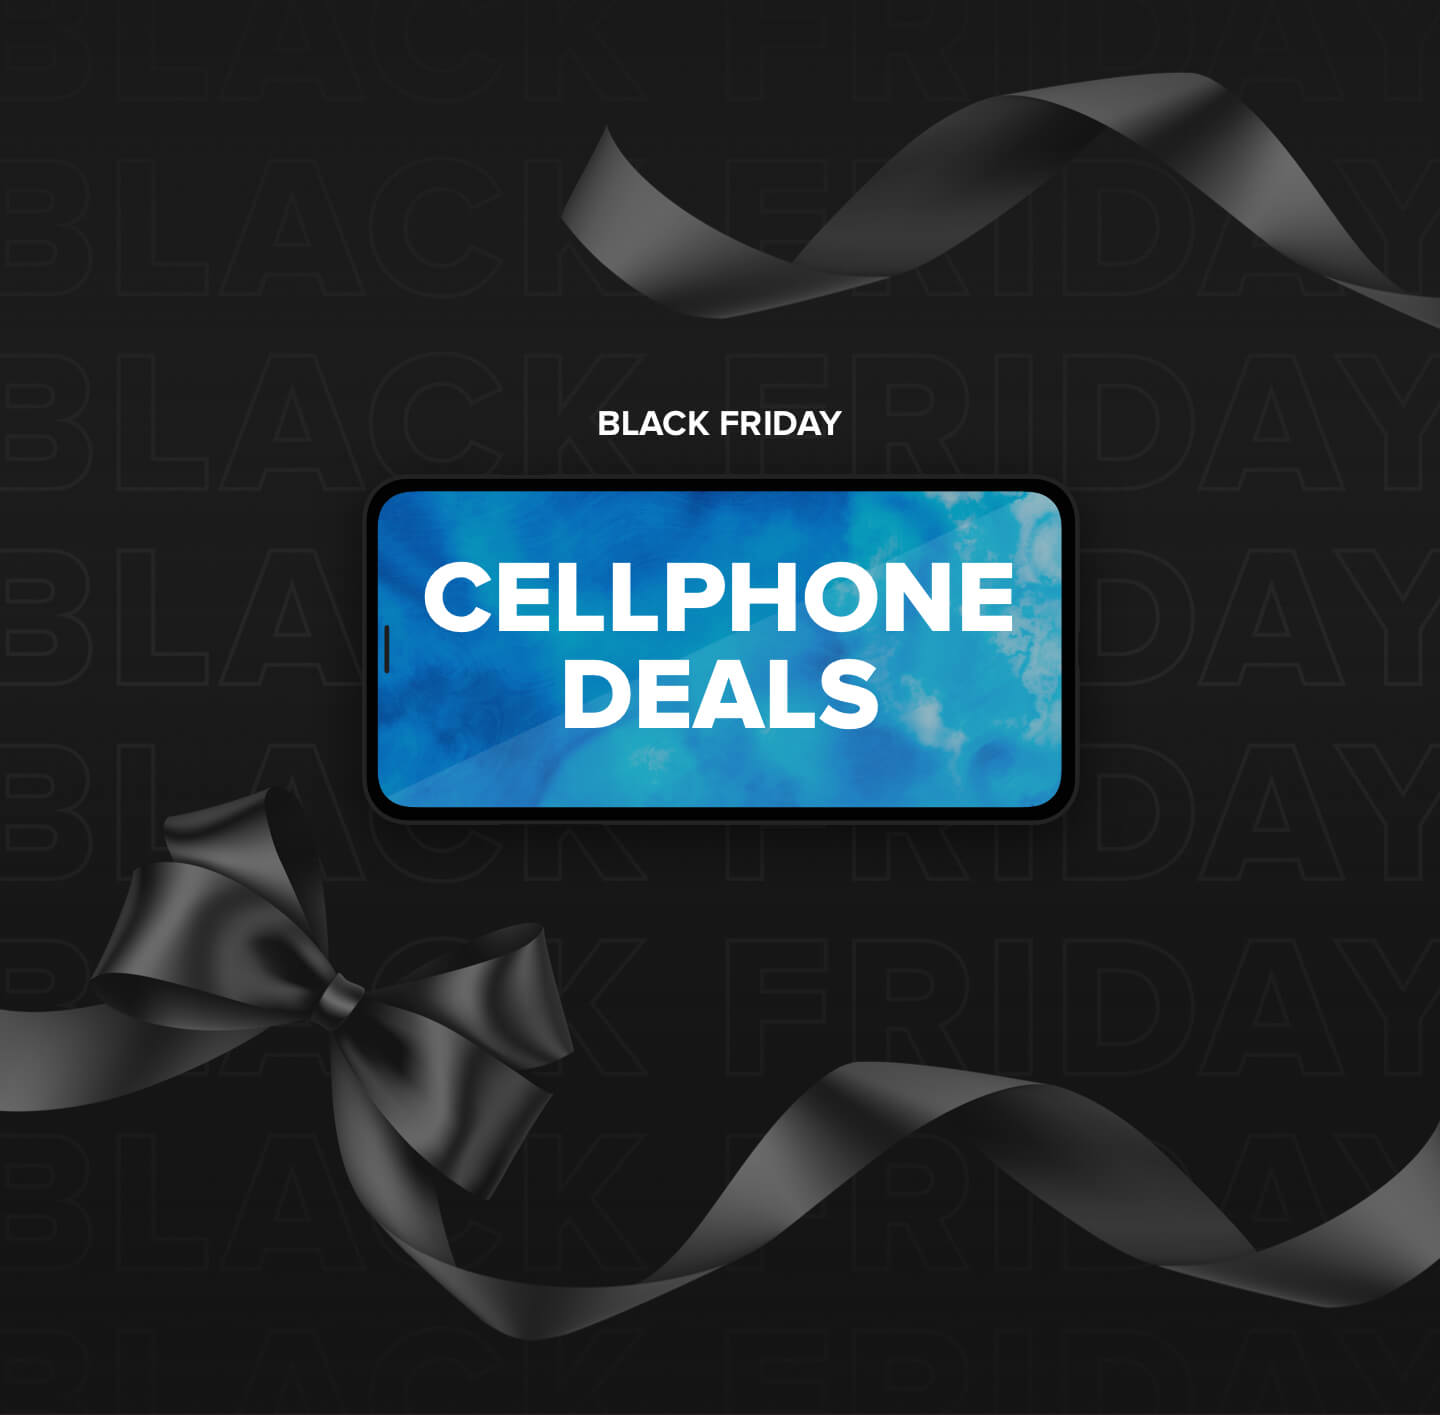 Image promoting Black Friday cellphone deals